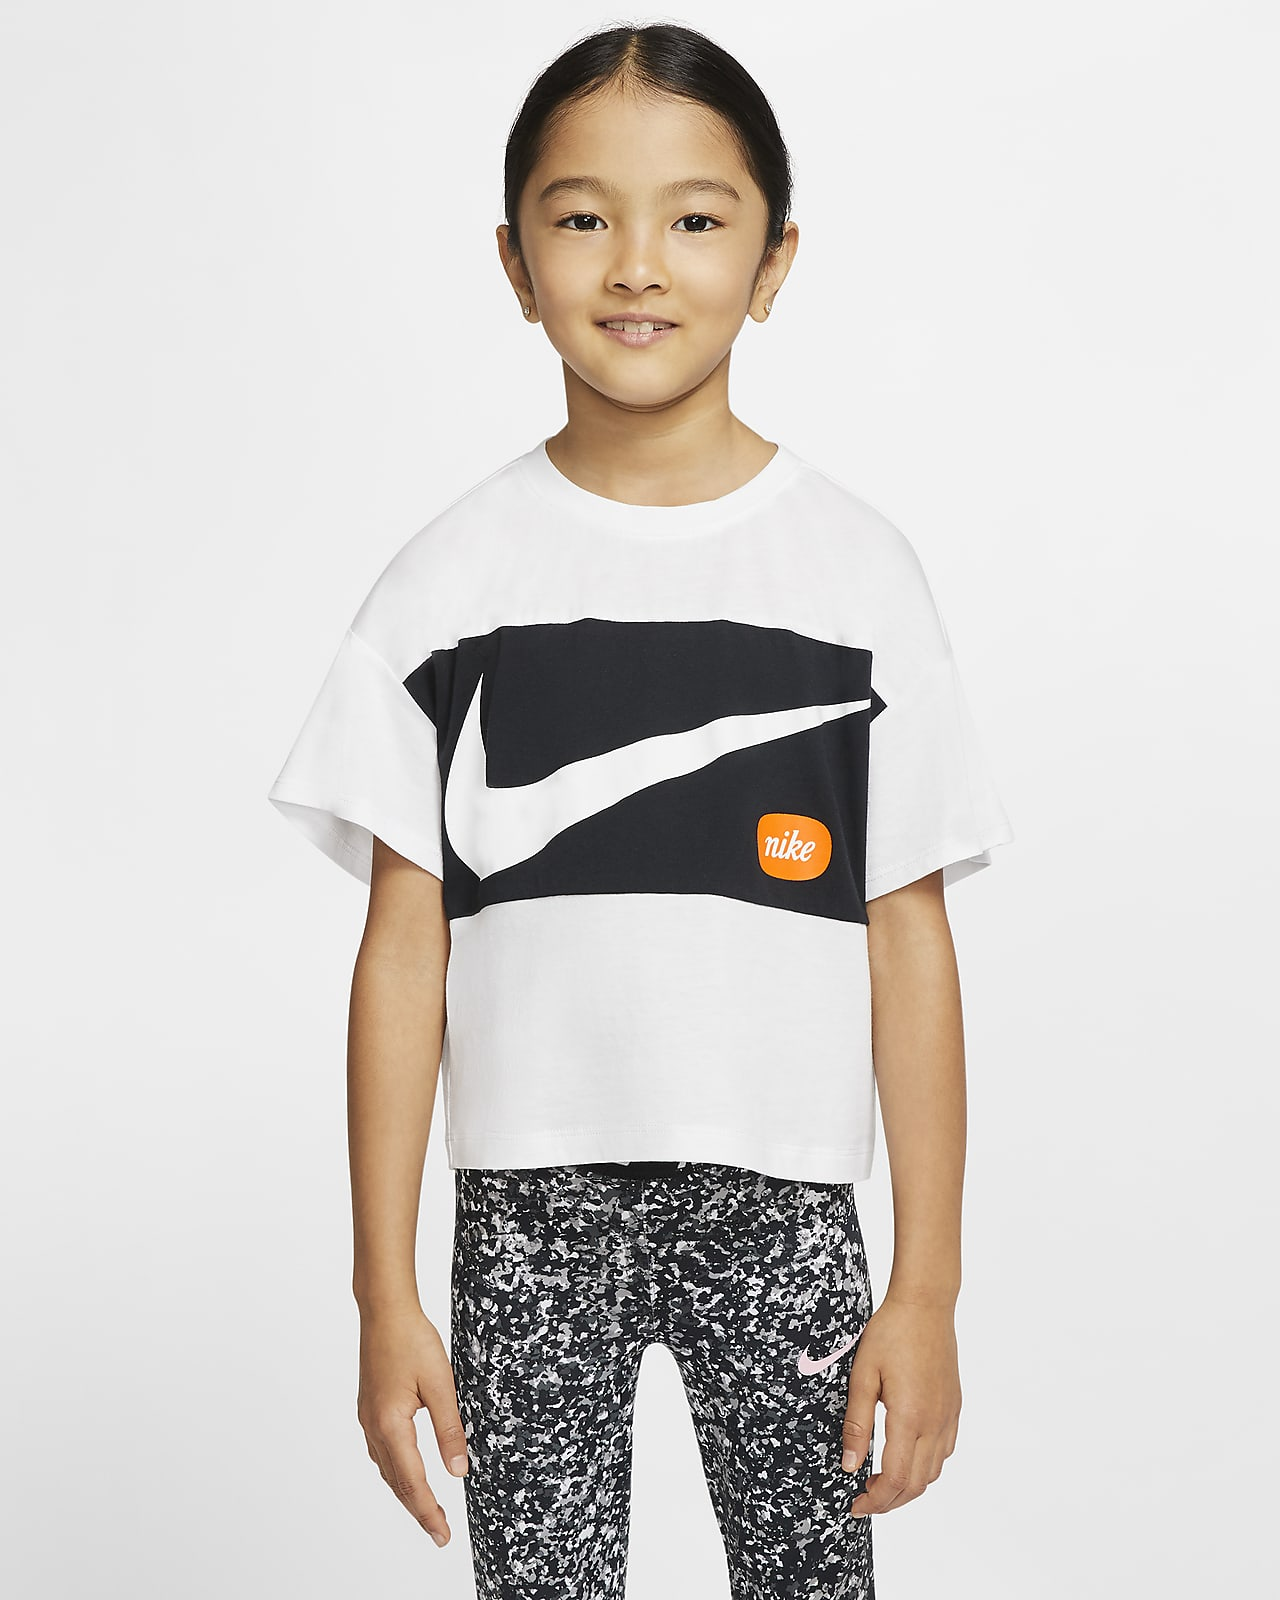 Nike Younger Kids' Cropped Short-Sleeve Top